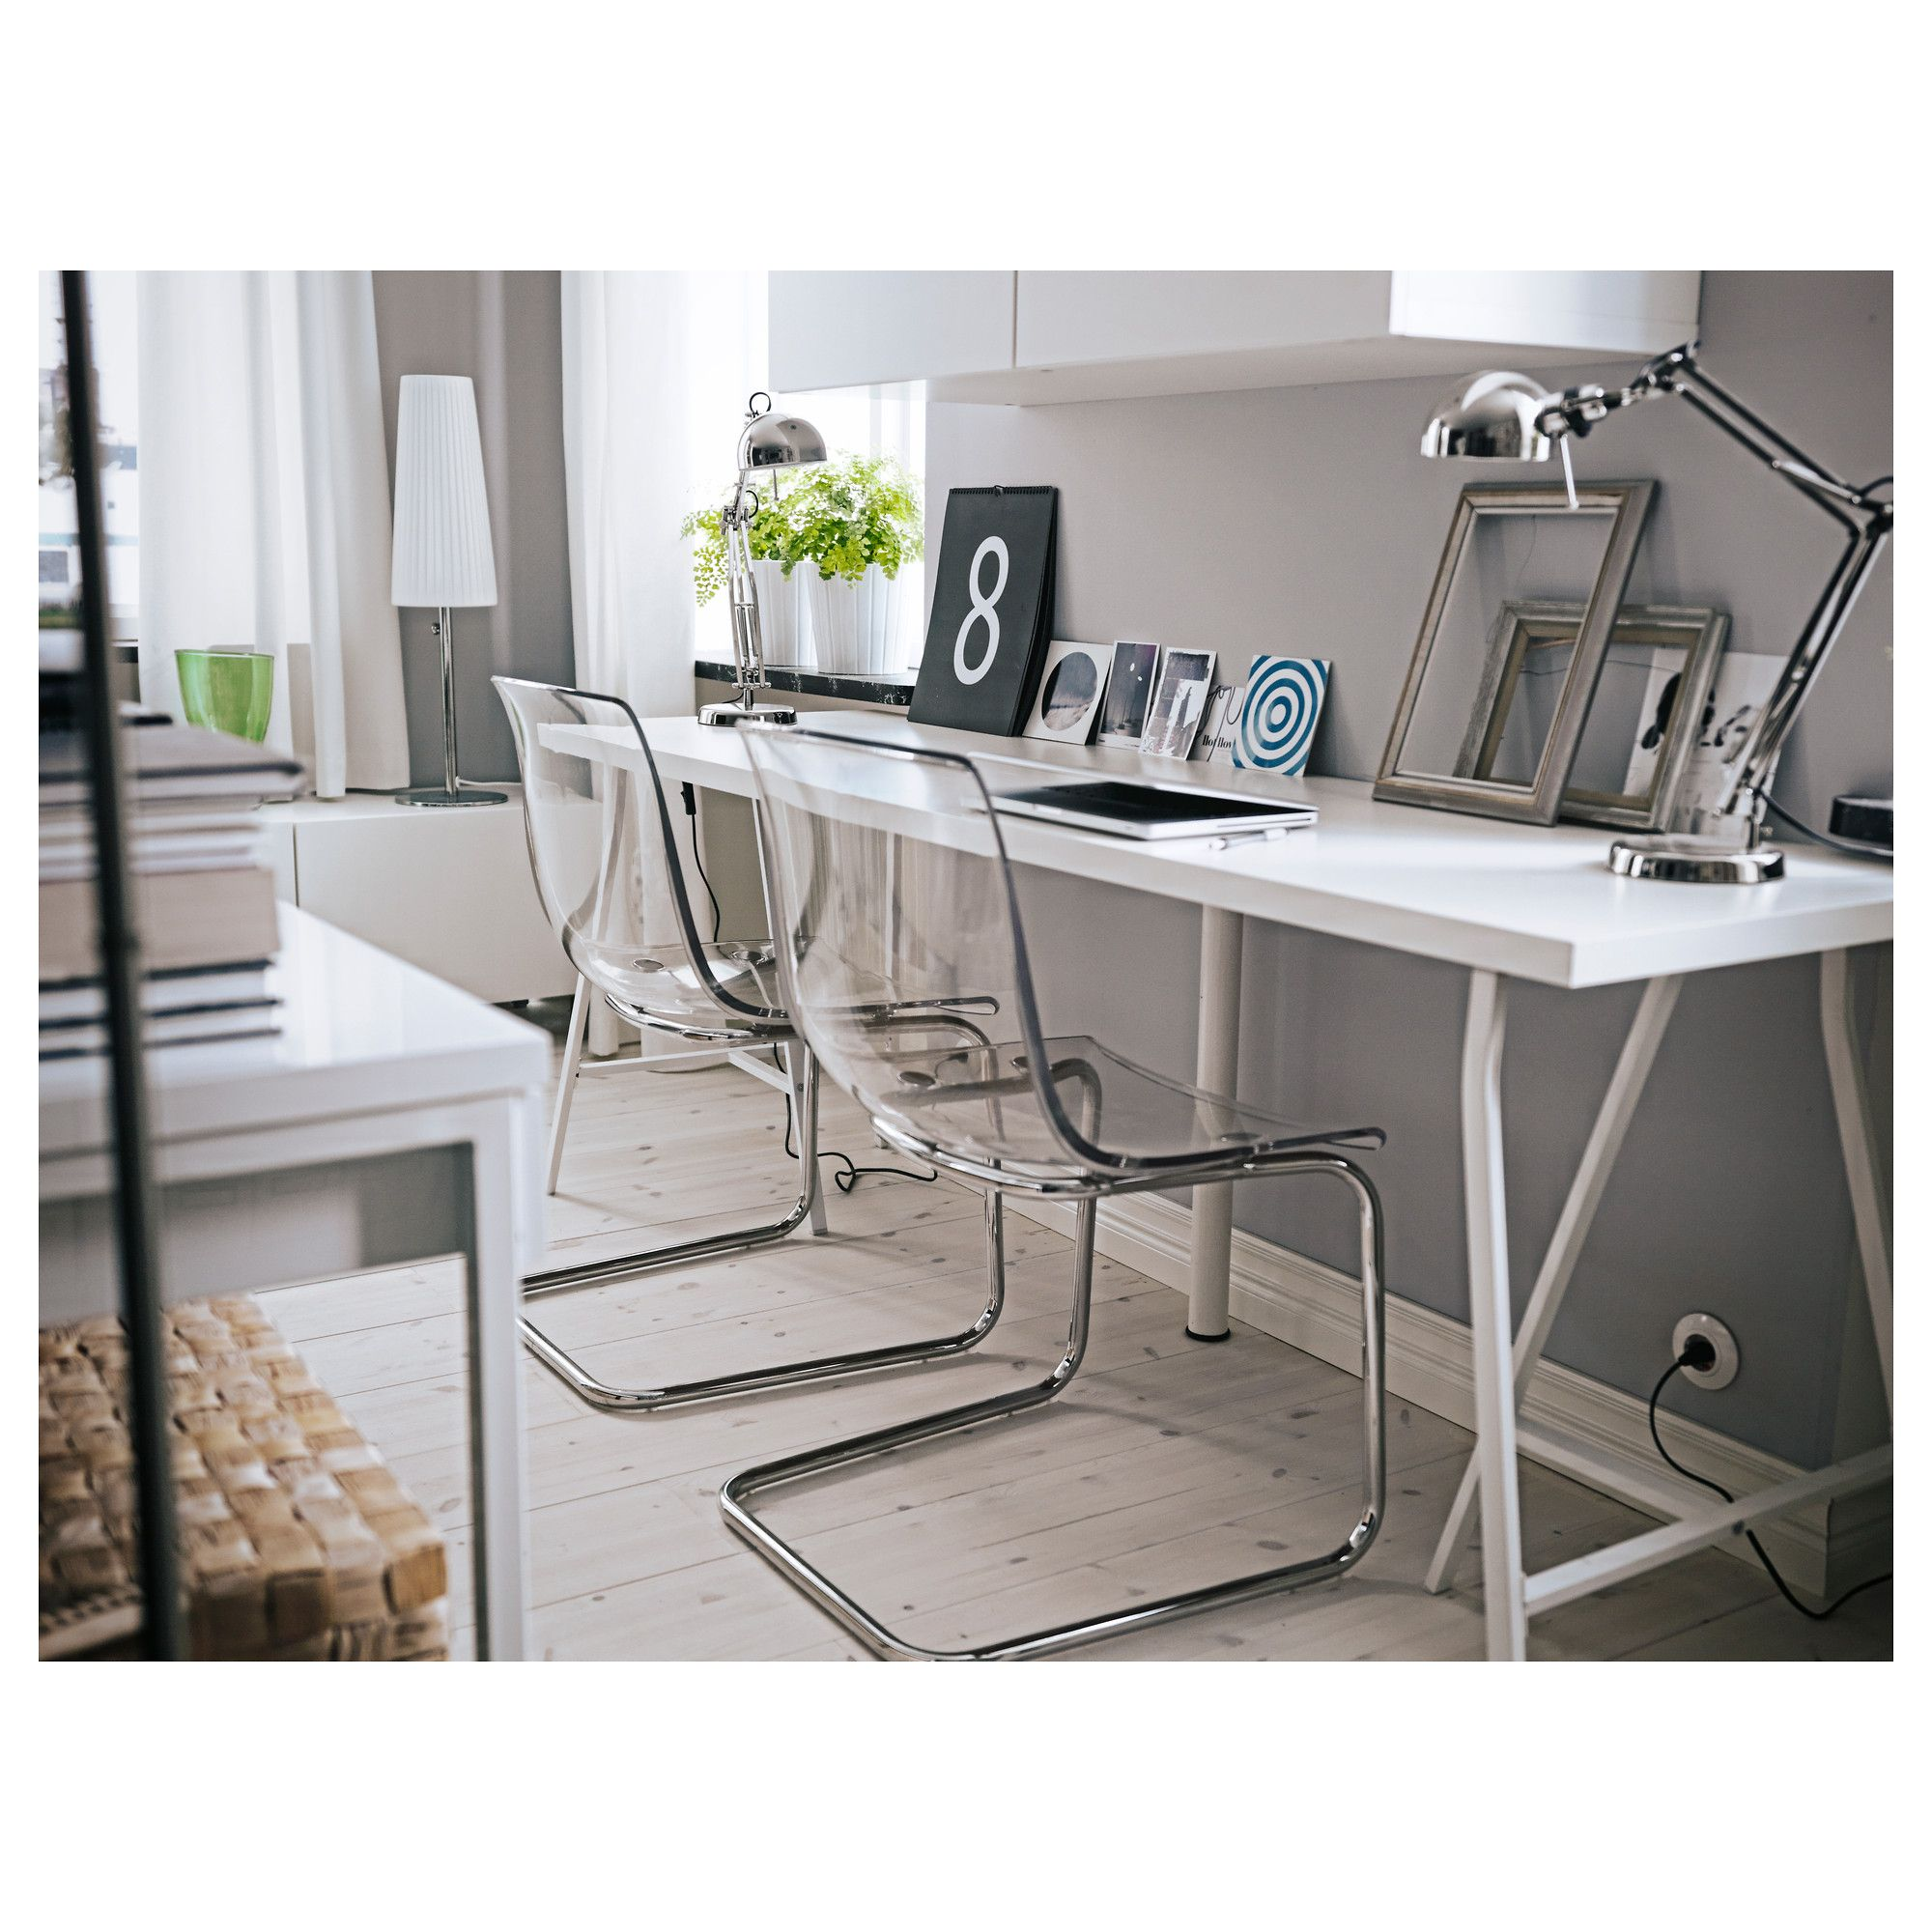 Furniture And Home Furnishings In 2019 Home Office